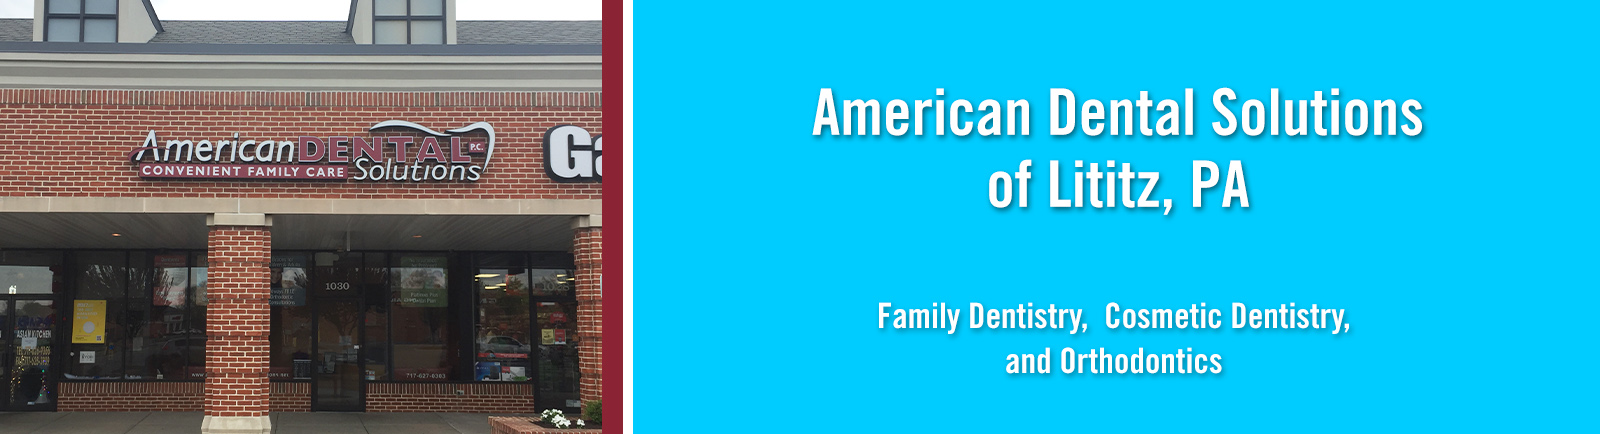 Lititz PA  American Dental Solutions